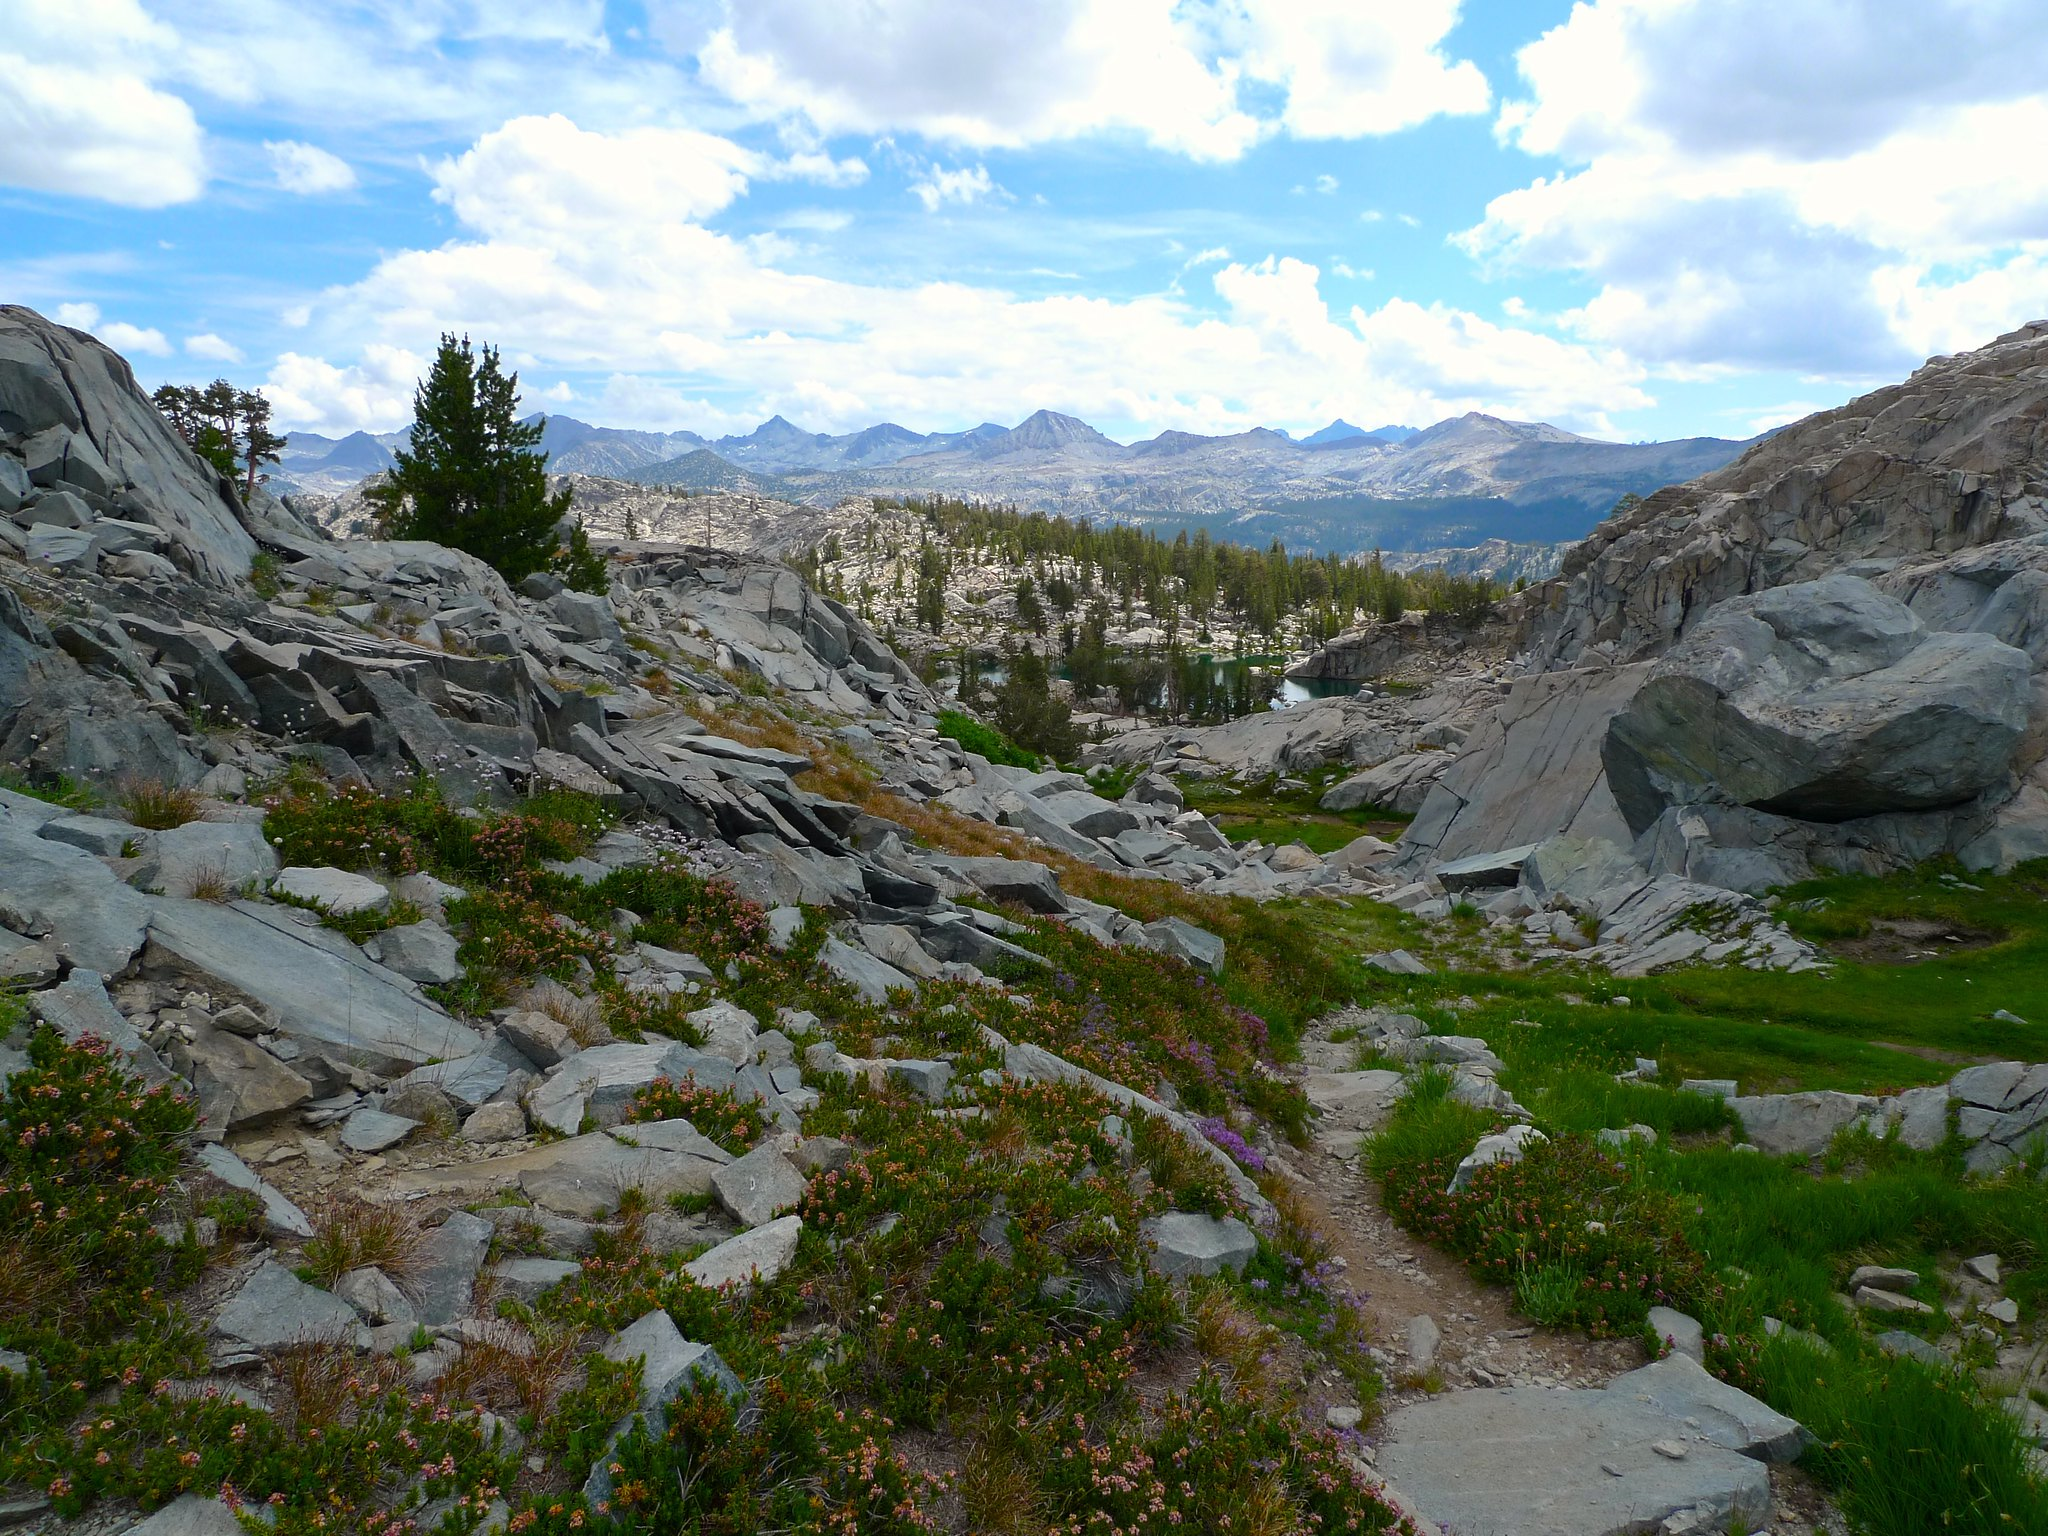 Wildflower bloom, tarns, and Yosemite high country